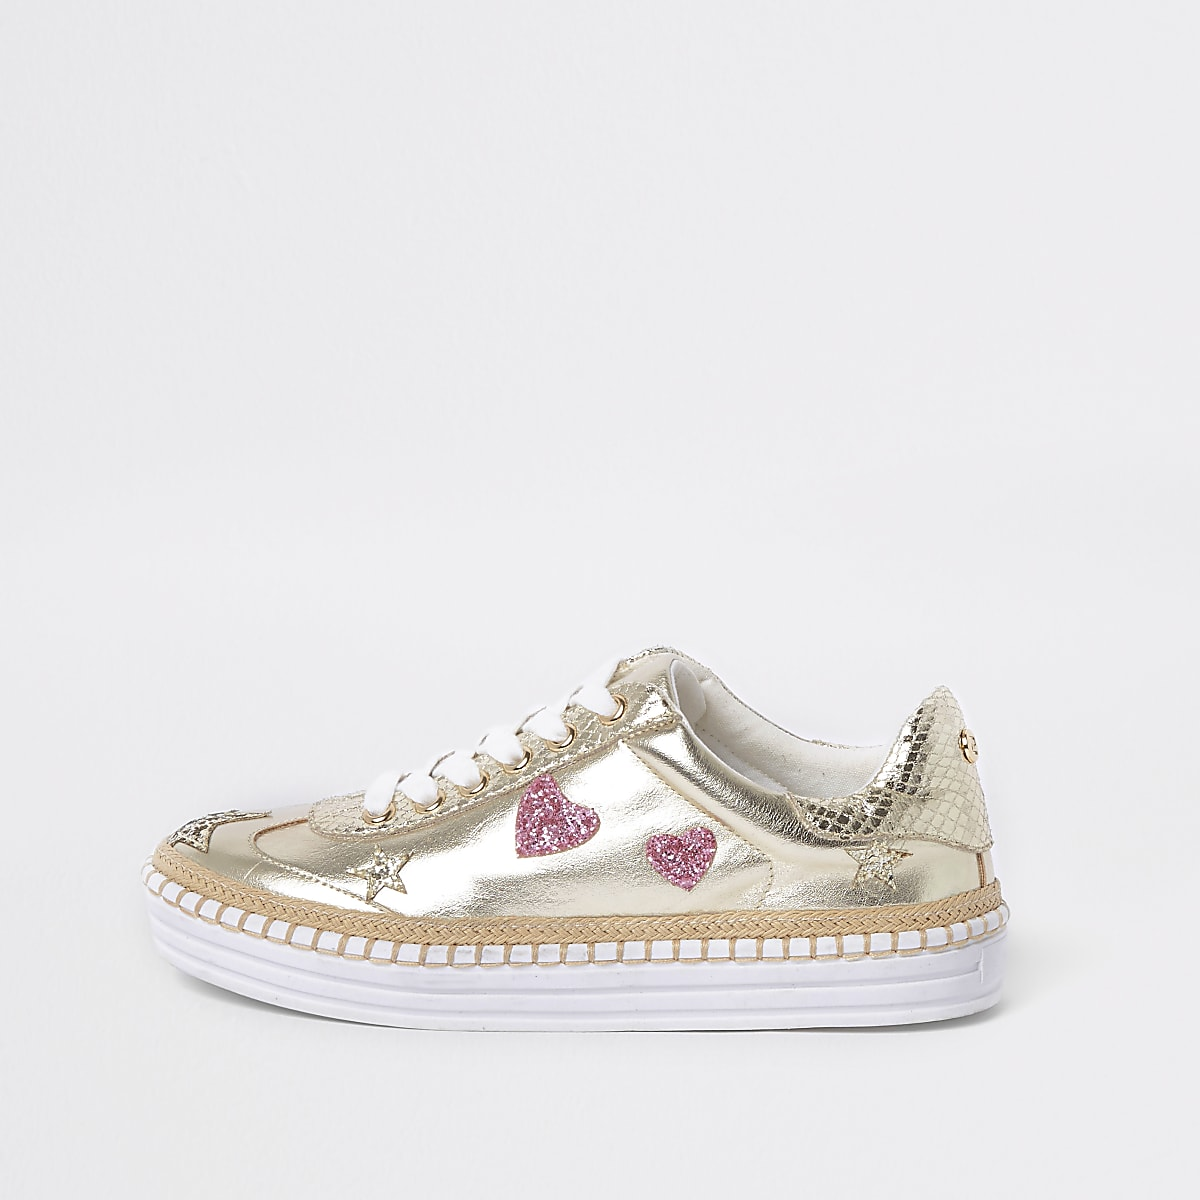 868efef1da8 Gold metallic star chunky espadrille trainers - Shoes - Shoes   Boots -  women